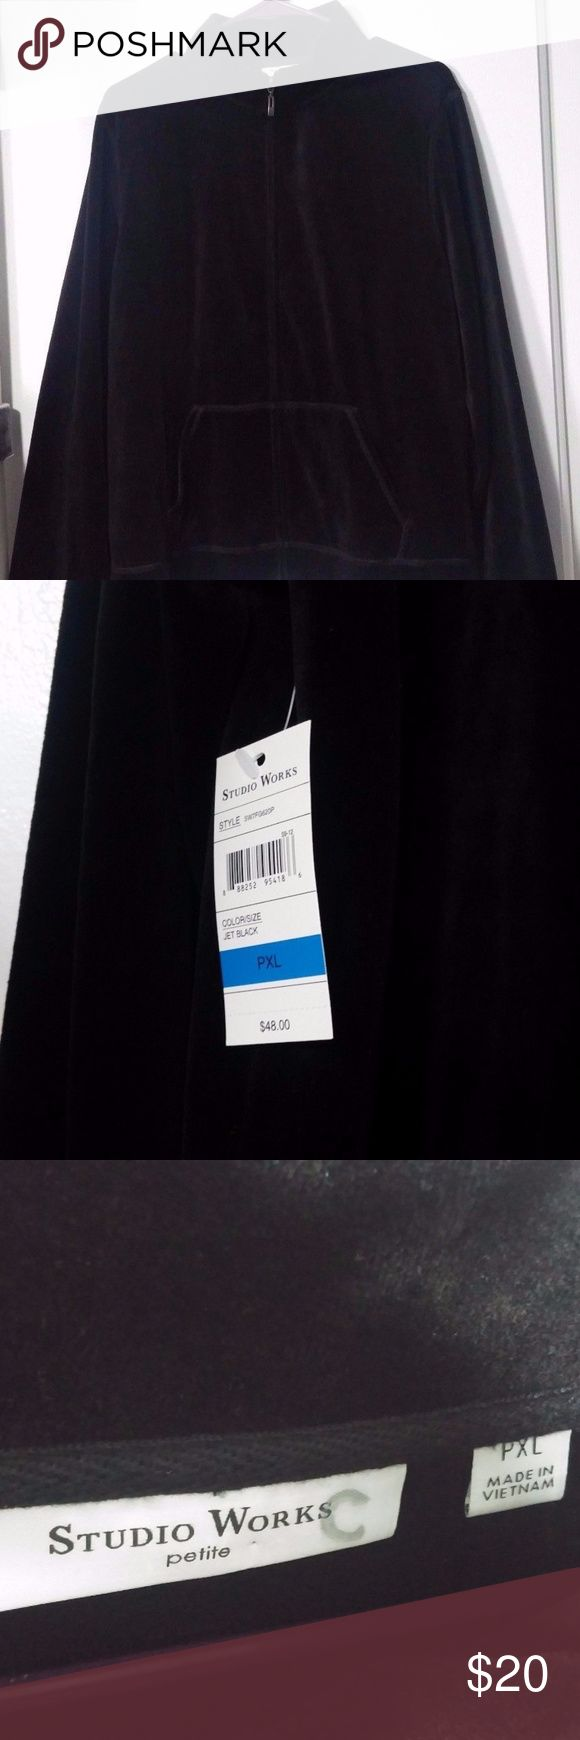 """Studio Works Velveteen Track Jacket Zip Up NWT Chest 44"""" - Sleeve Length 24"""" - Length 24""""  NEW with Tags Studio Works Women's Zip up Velveteen Track Jacket - 2 front pockets  Solid Black Size PETITE XL / PXL  - MSRP $48  Machine wash cold, tumble dry low - 75% cotton, 25% polyester  NEW with tags in excellent condition, but has a C written on inner tag - does not affect anything STUDIO WORKS Jackets & Coats"""